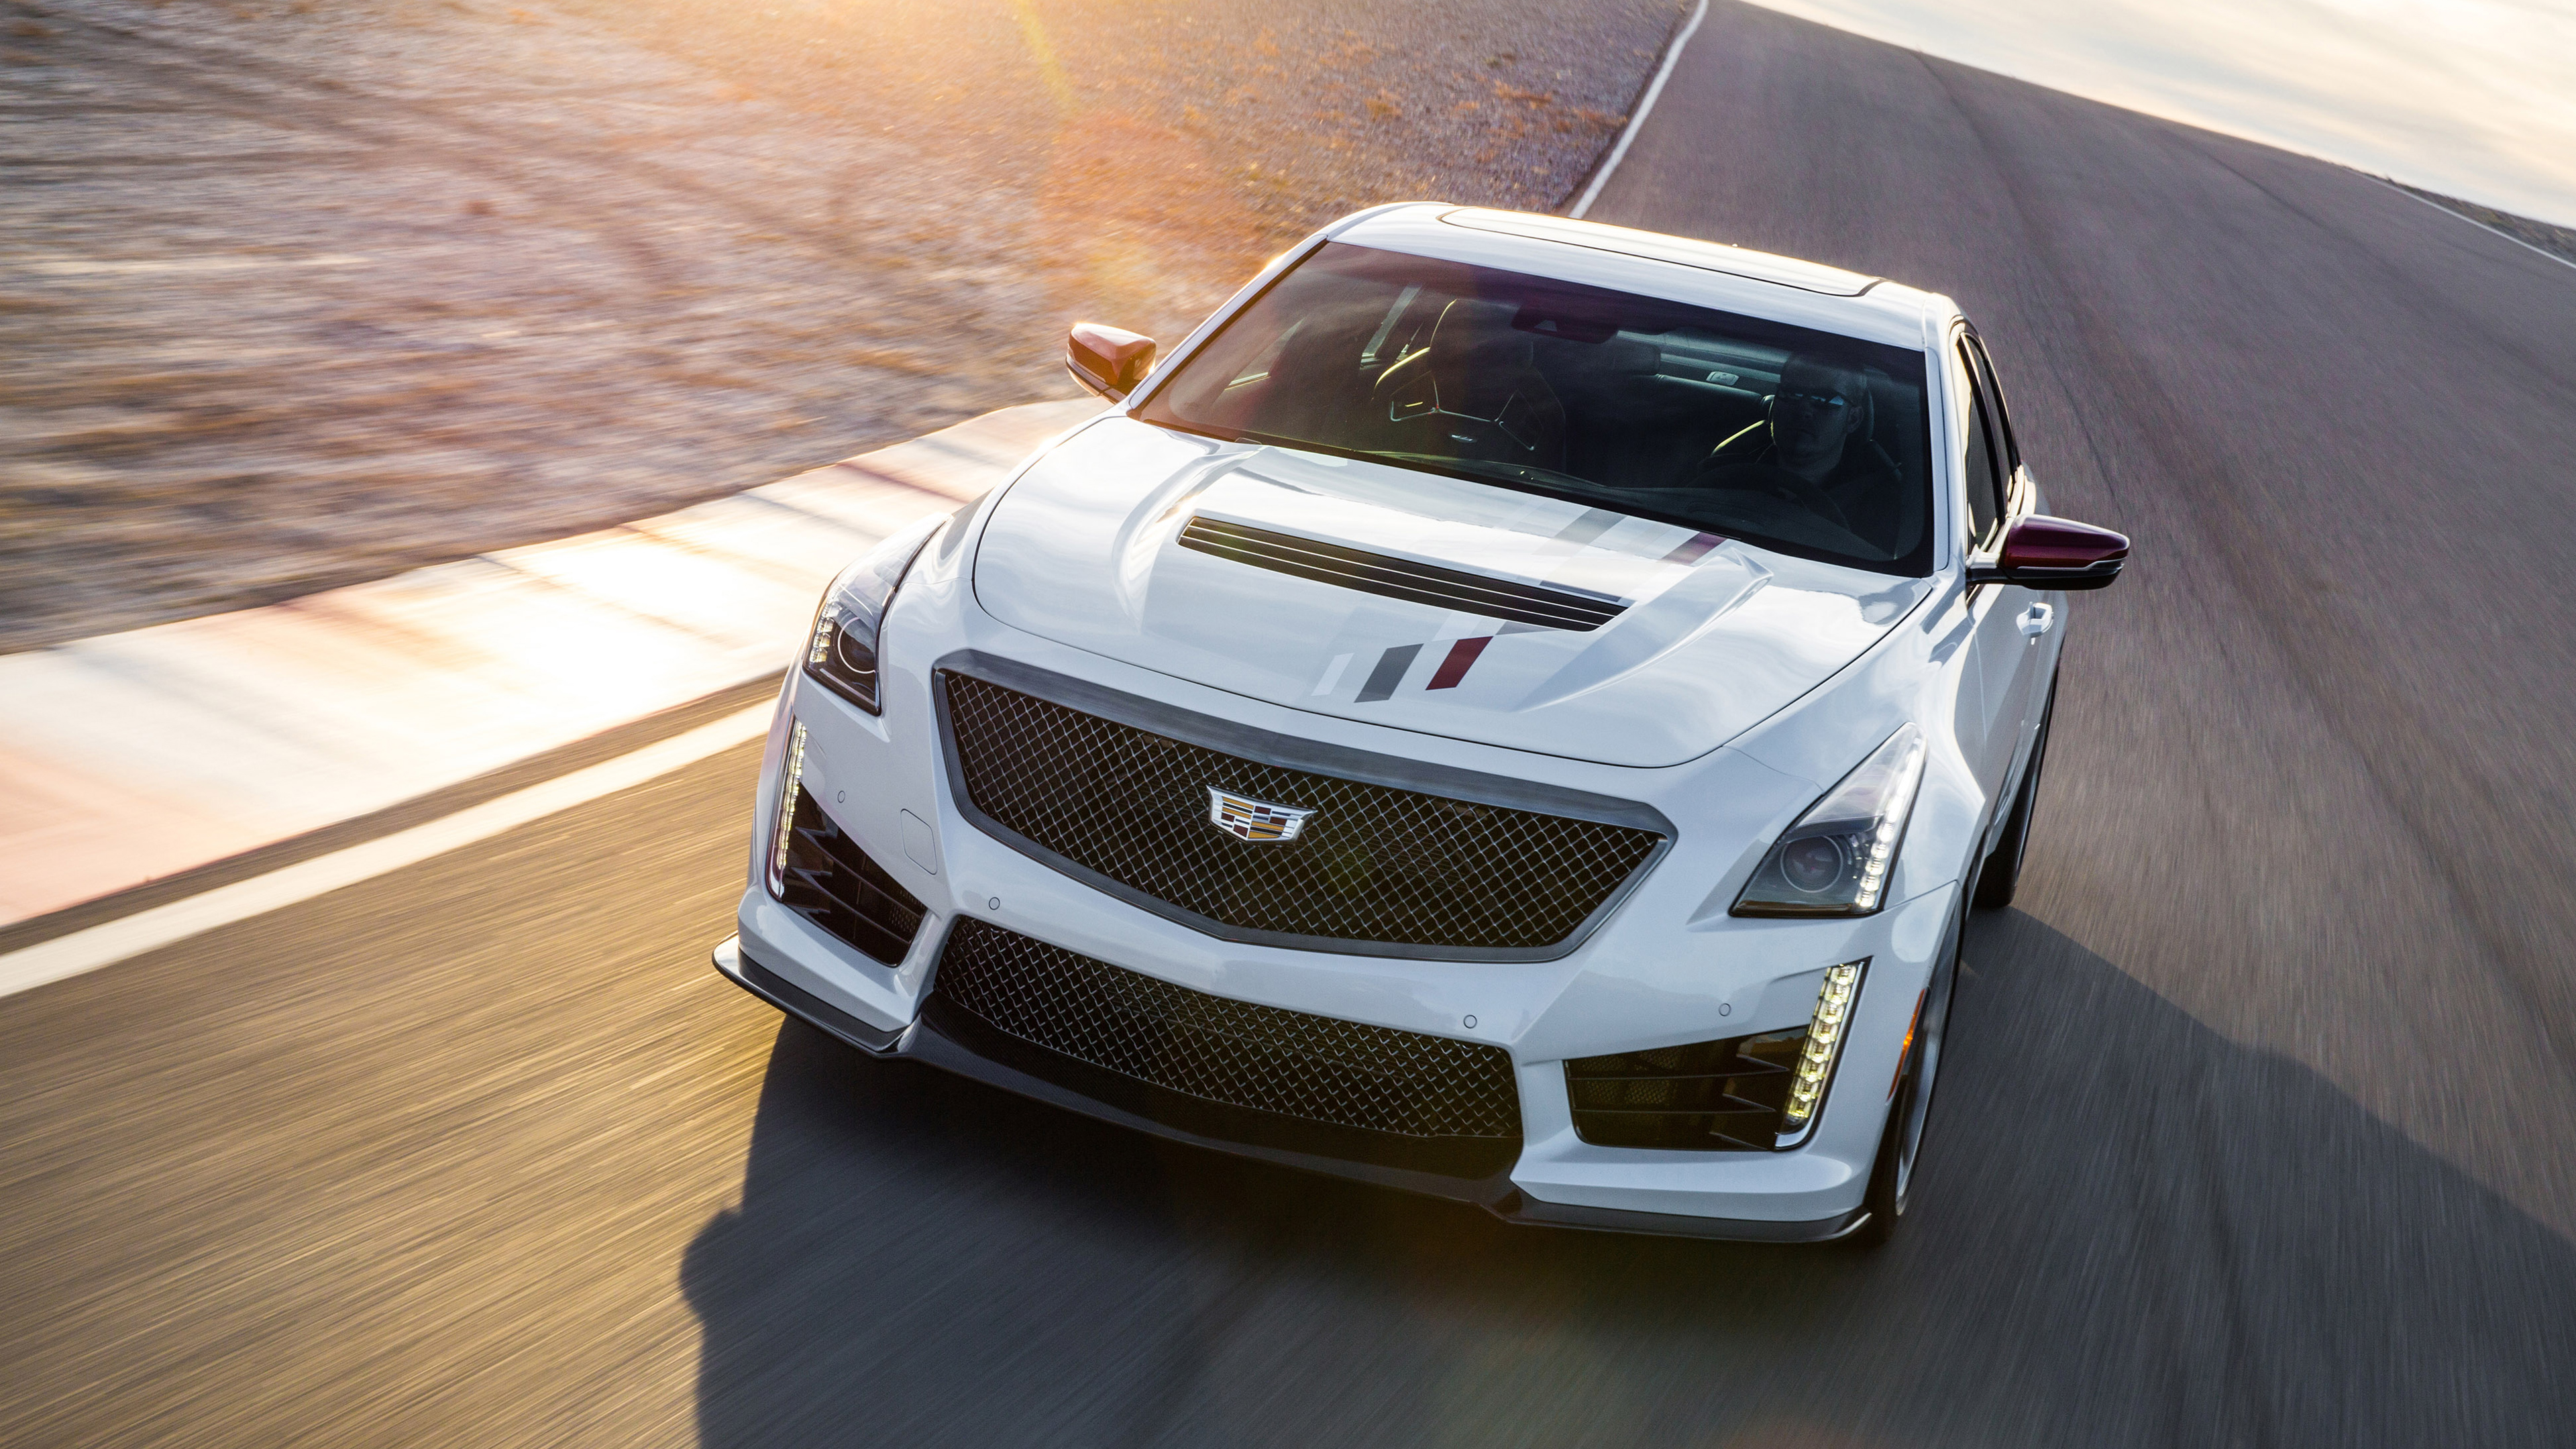 2018 Cadillac Cts V Championship Edition 4k Wallpaper Hd